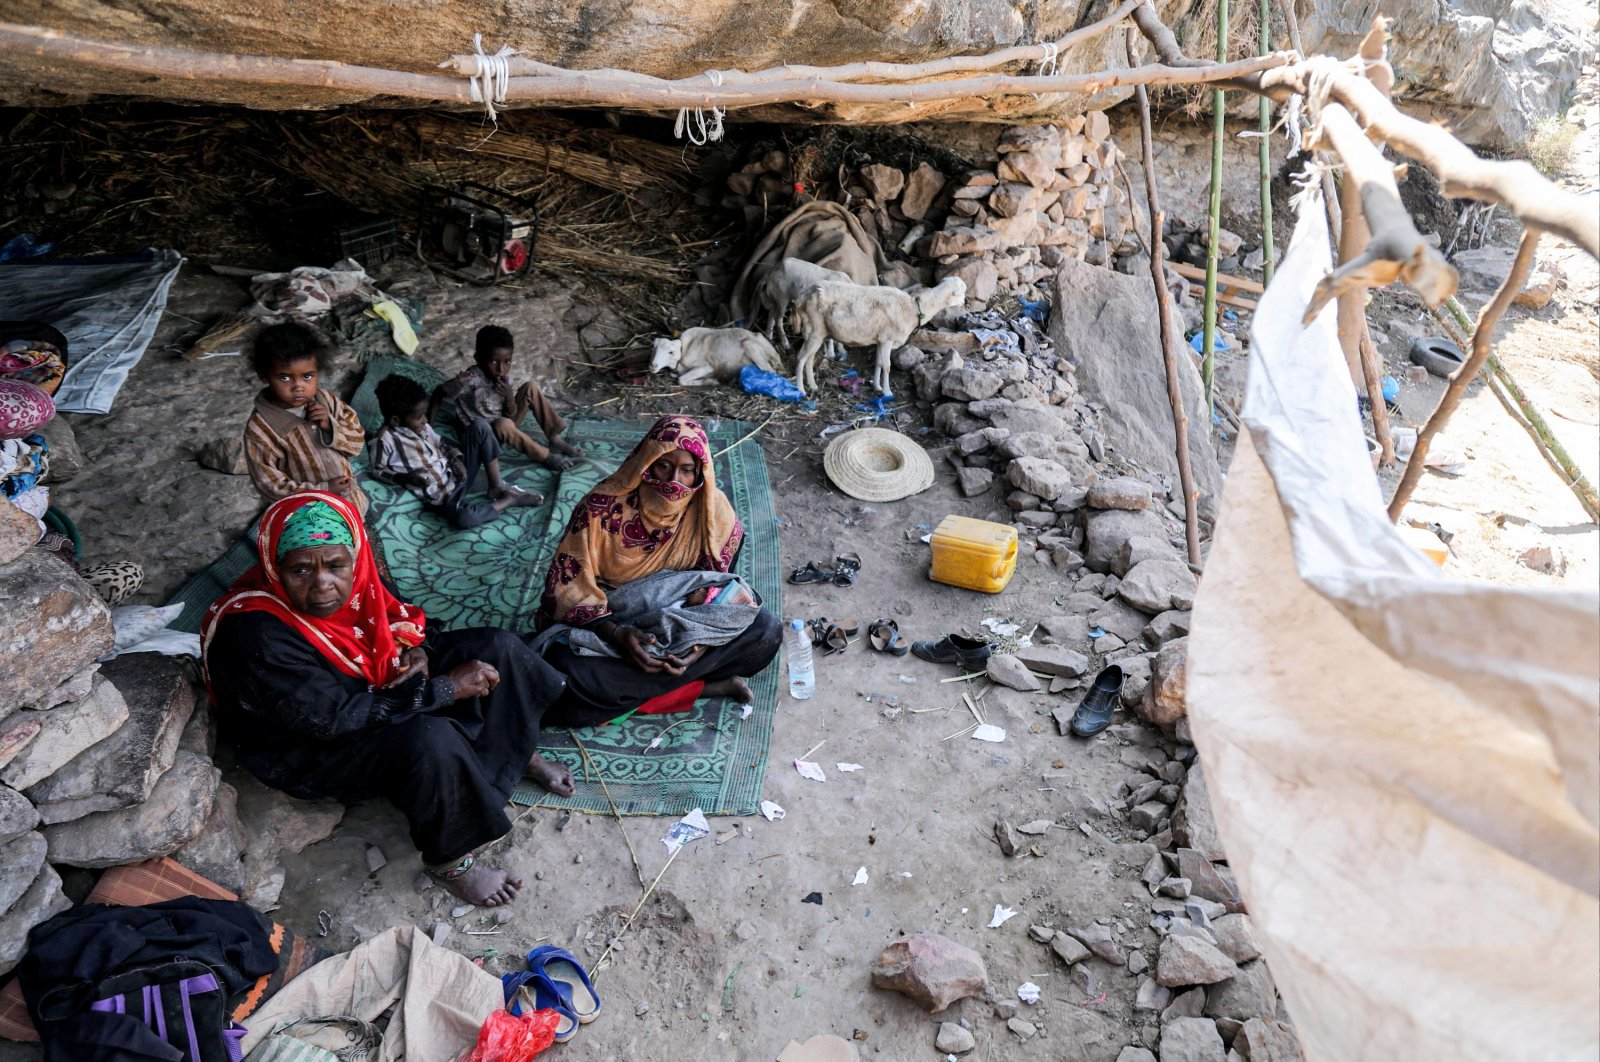 Women and children sit on the ground in a shack by a cave where a Yemeni family has sought refuge due to poverty and lack of housing, west of the suburbs of Taez, Yemen, Dec. 2, 2020. (AFP Photo)